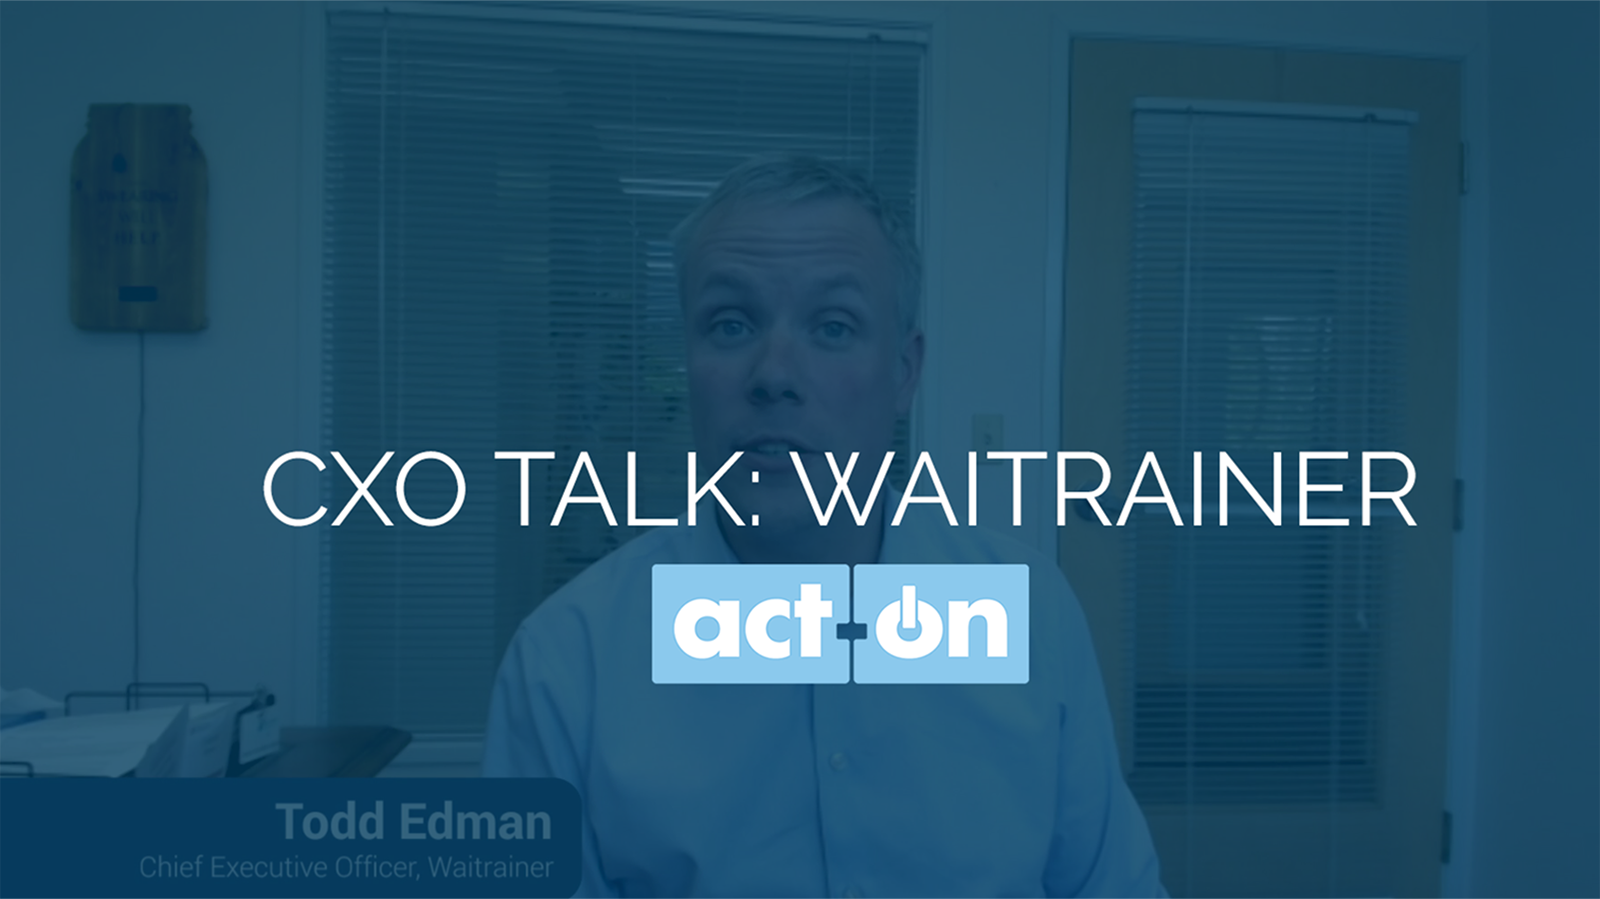 CXO Talk: Waitrainer